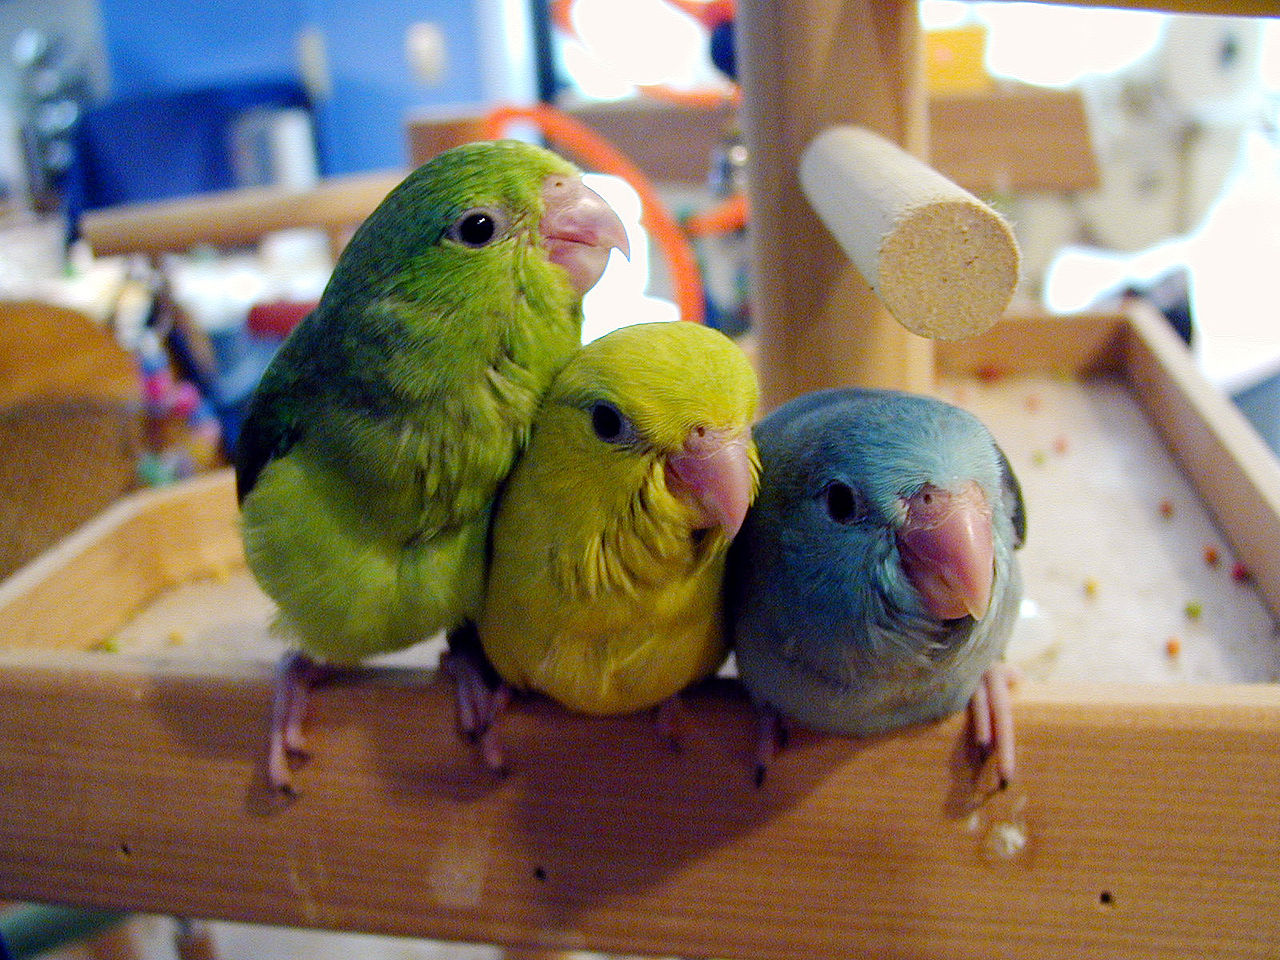 Is Parrot Food Poisionus To Dogs